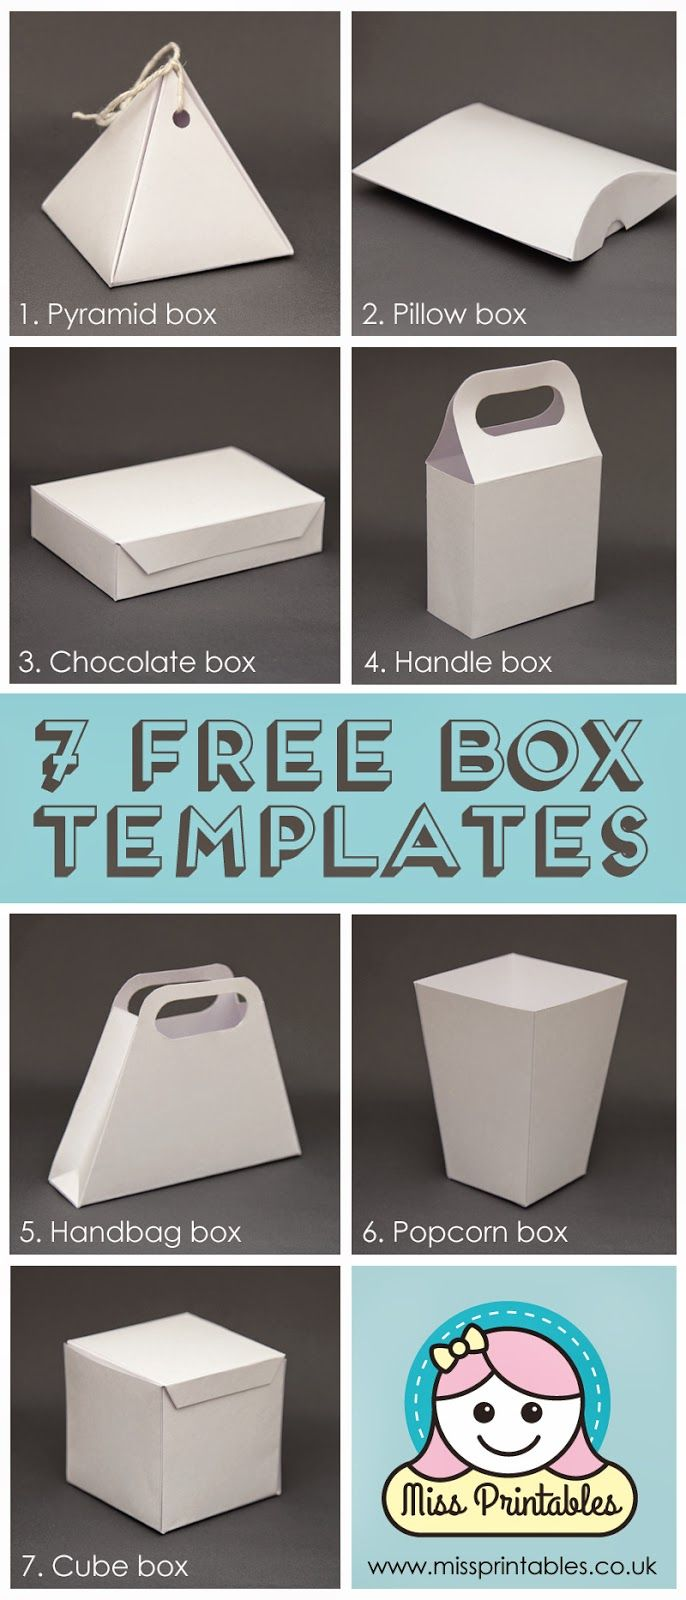 BOX TEMPLATE FREE | Box templates, Template and Box